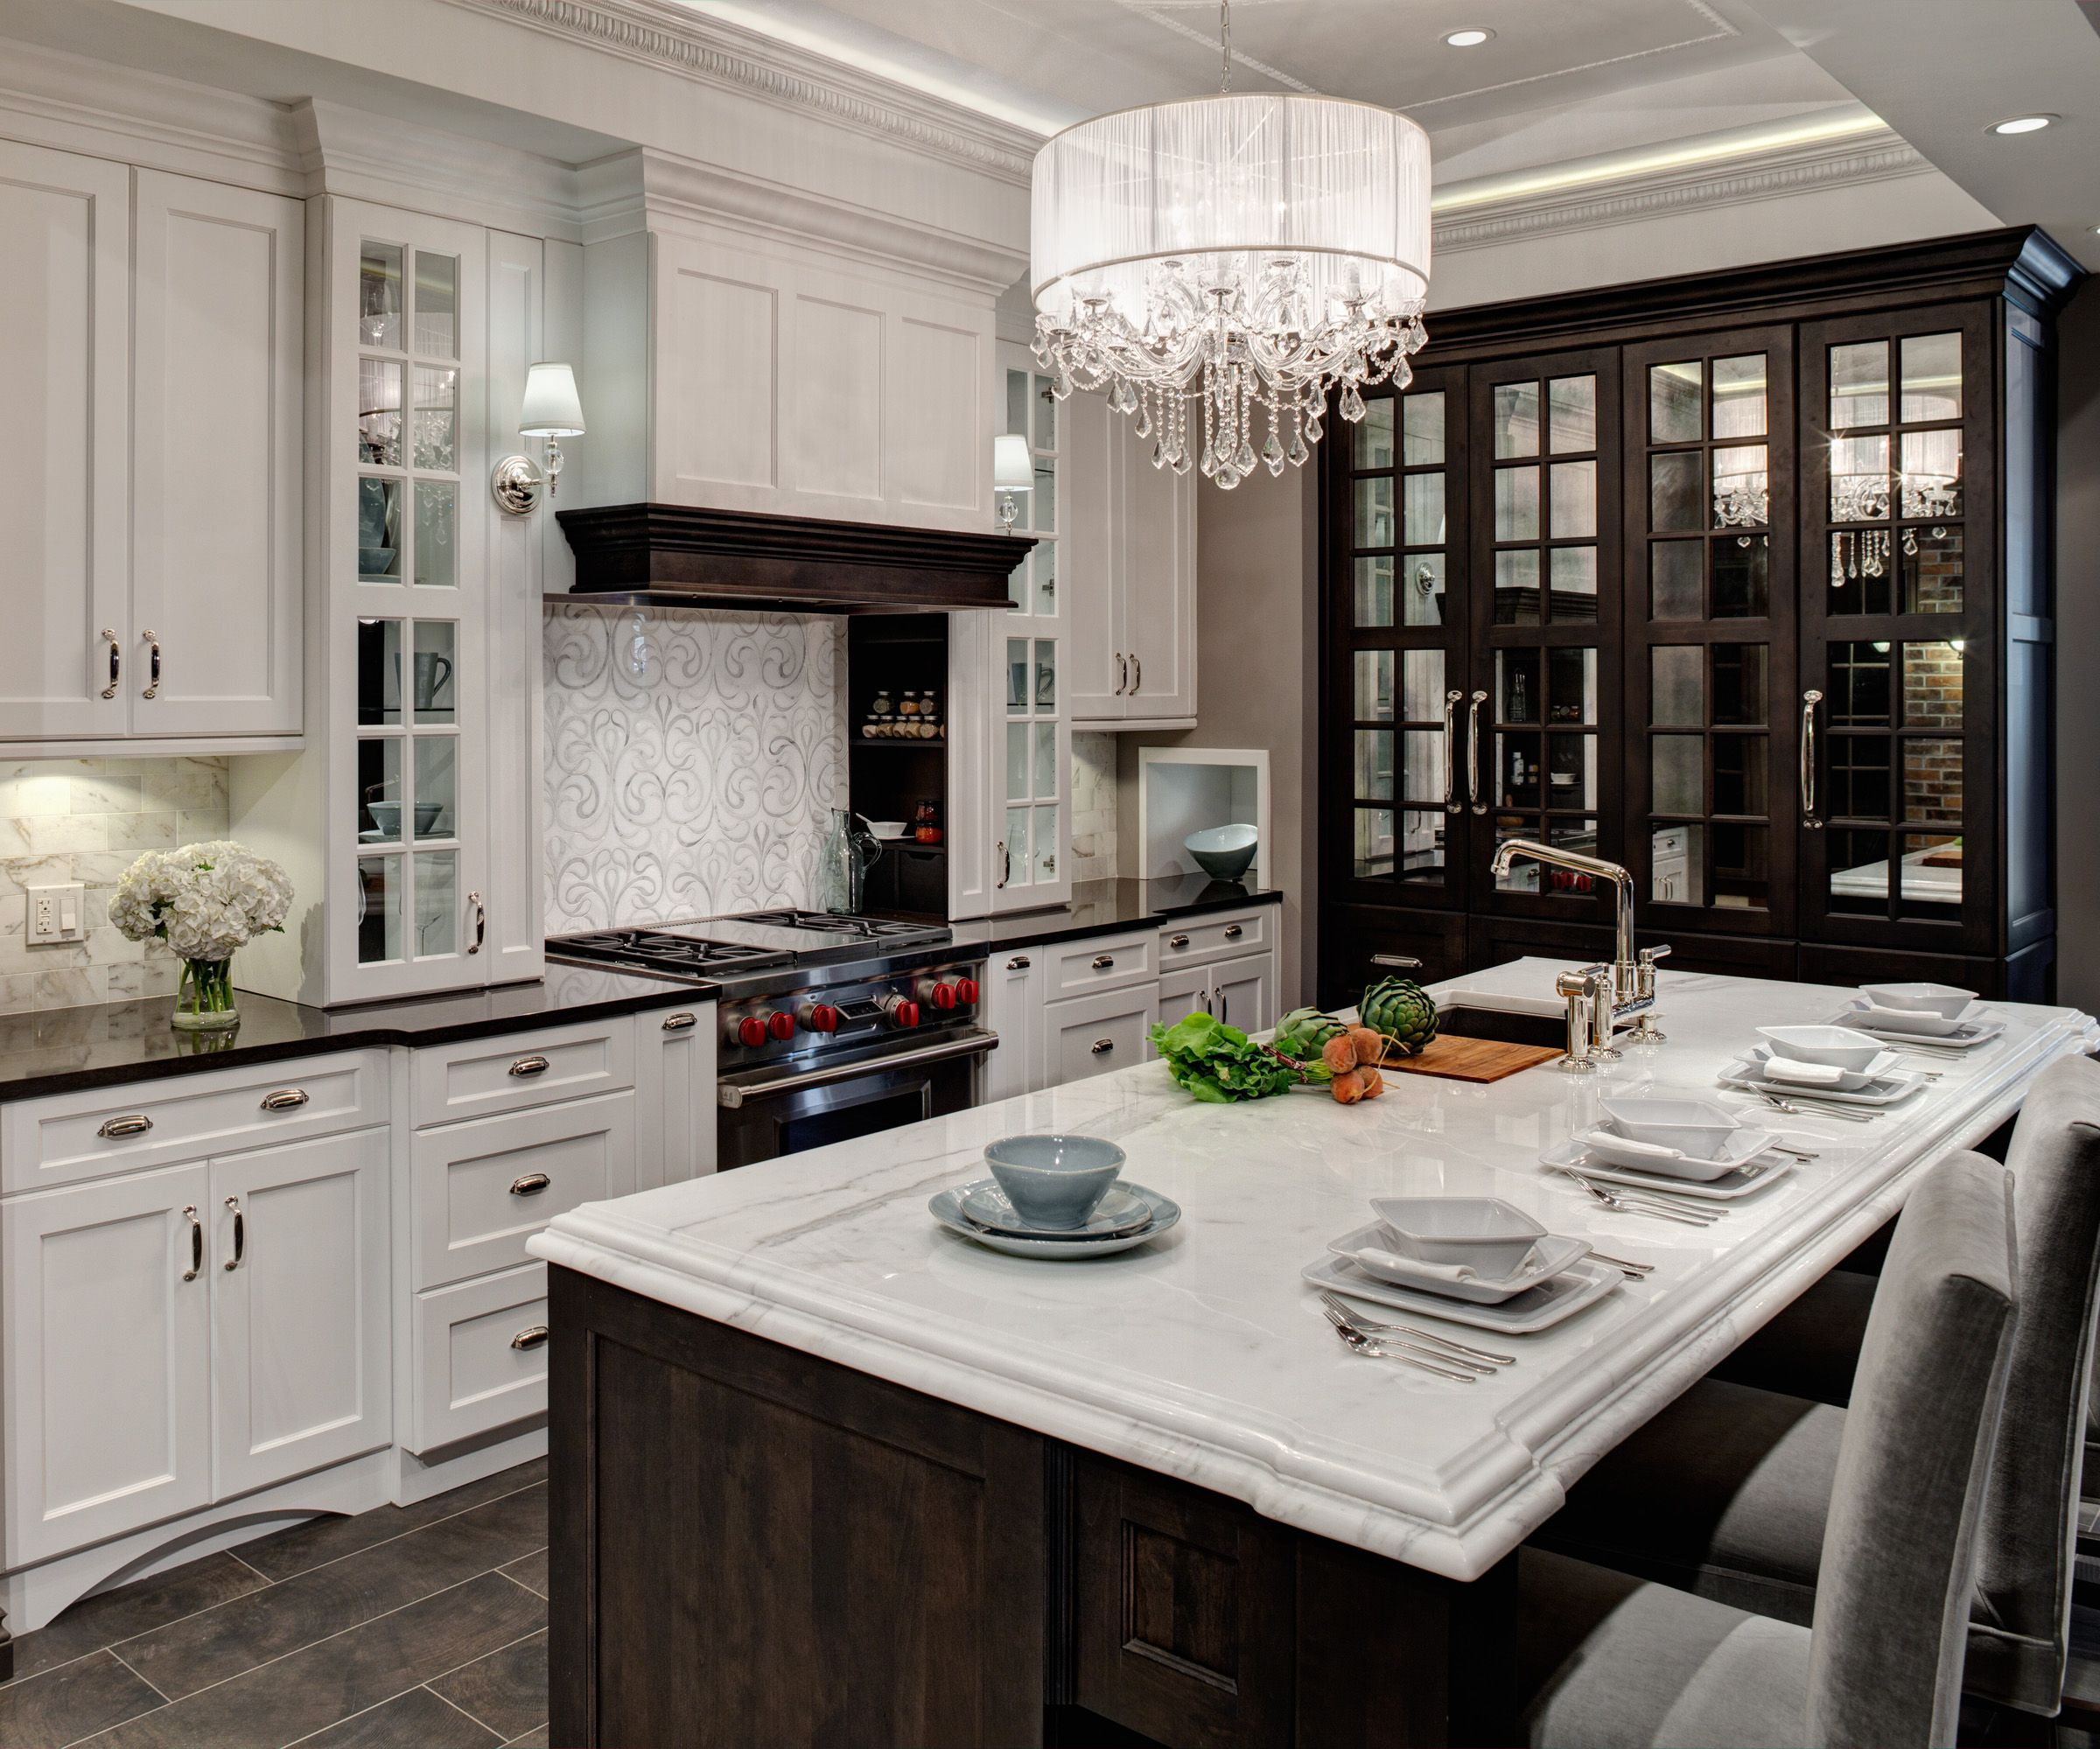 Kitchen Designer Chicago Pleasing Lincolnwood Design Showroom Kitchen Display  Kitchen Islands Design Ideas